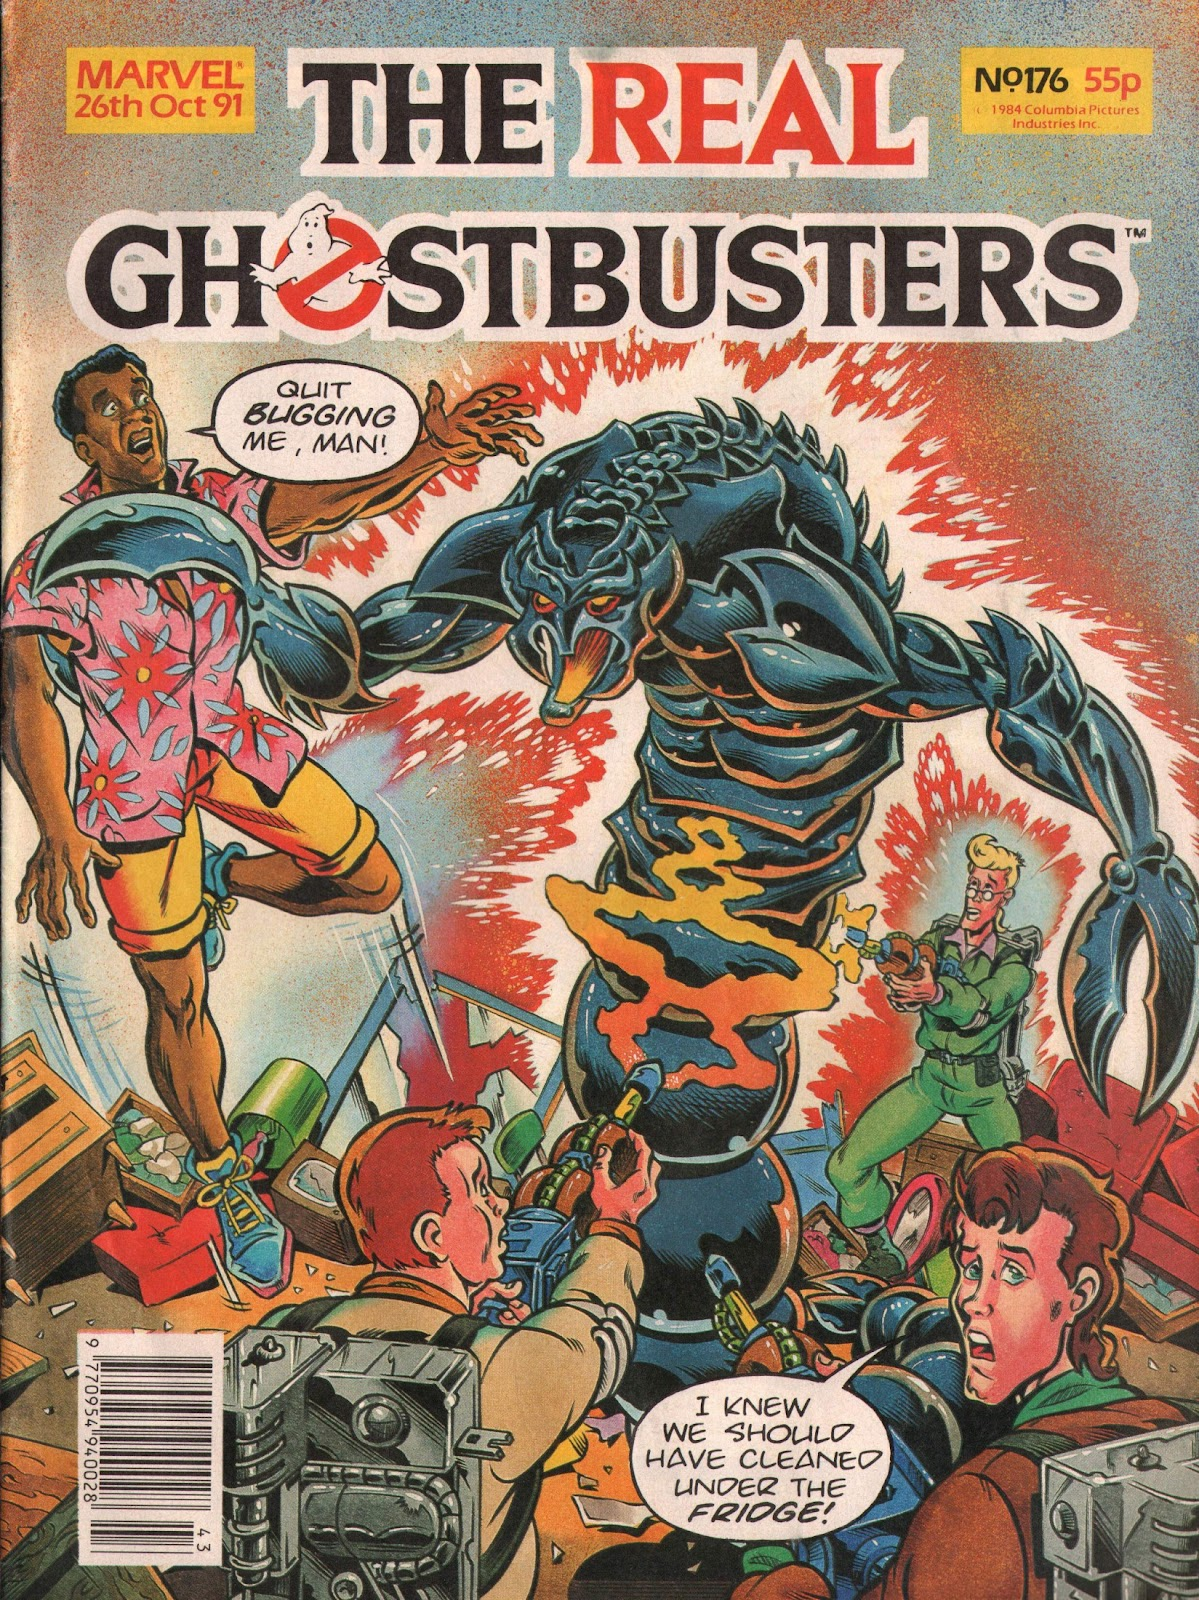 The Real Ghostbusters 176 Page 1